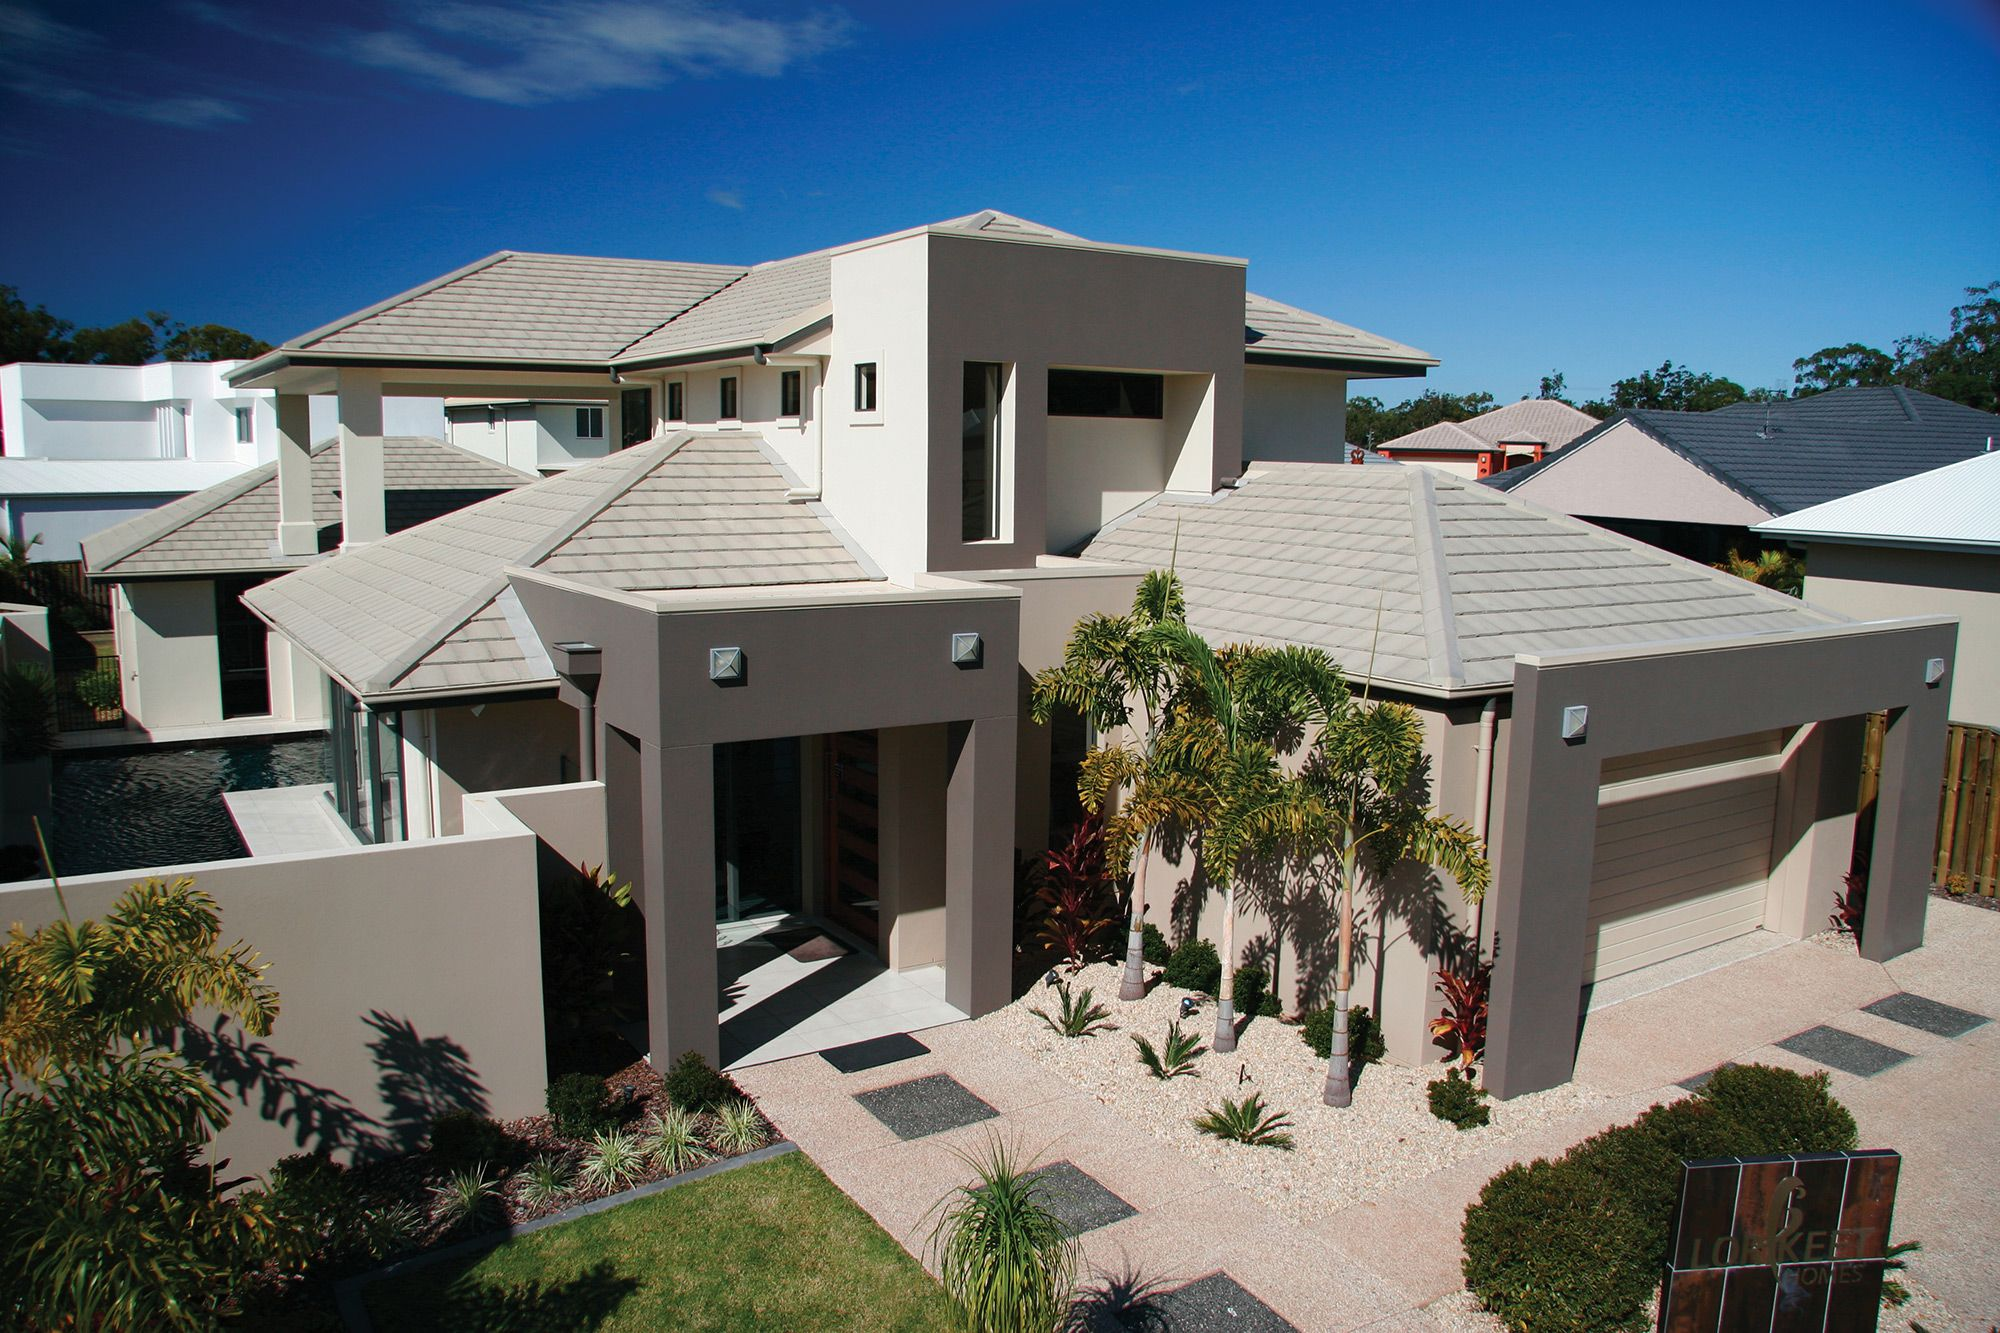 Check Out This Tile From Monier Horizon In Wild Rice Concrete Tiles Roofing Concrete Roof Tiles